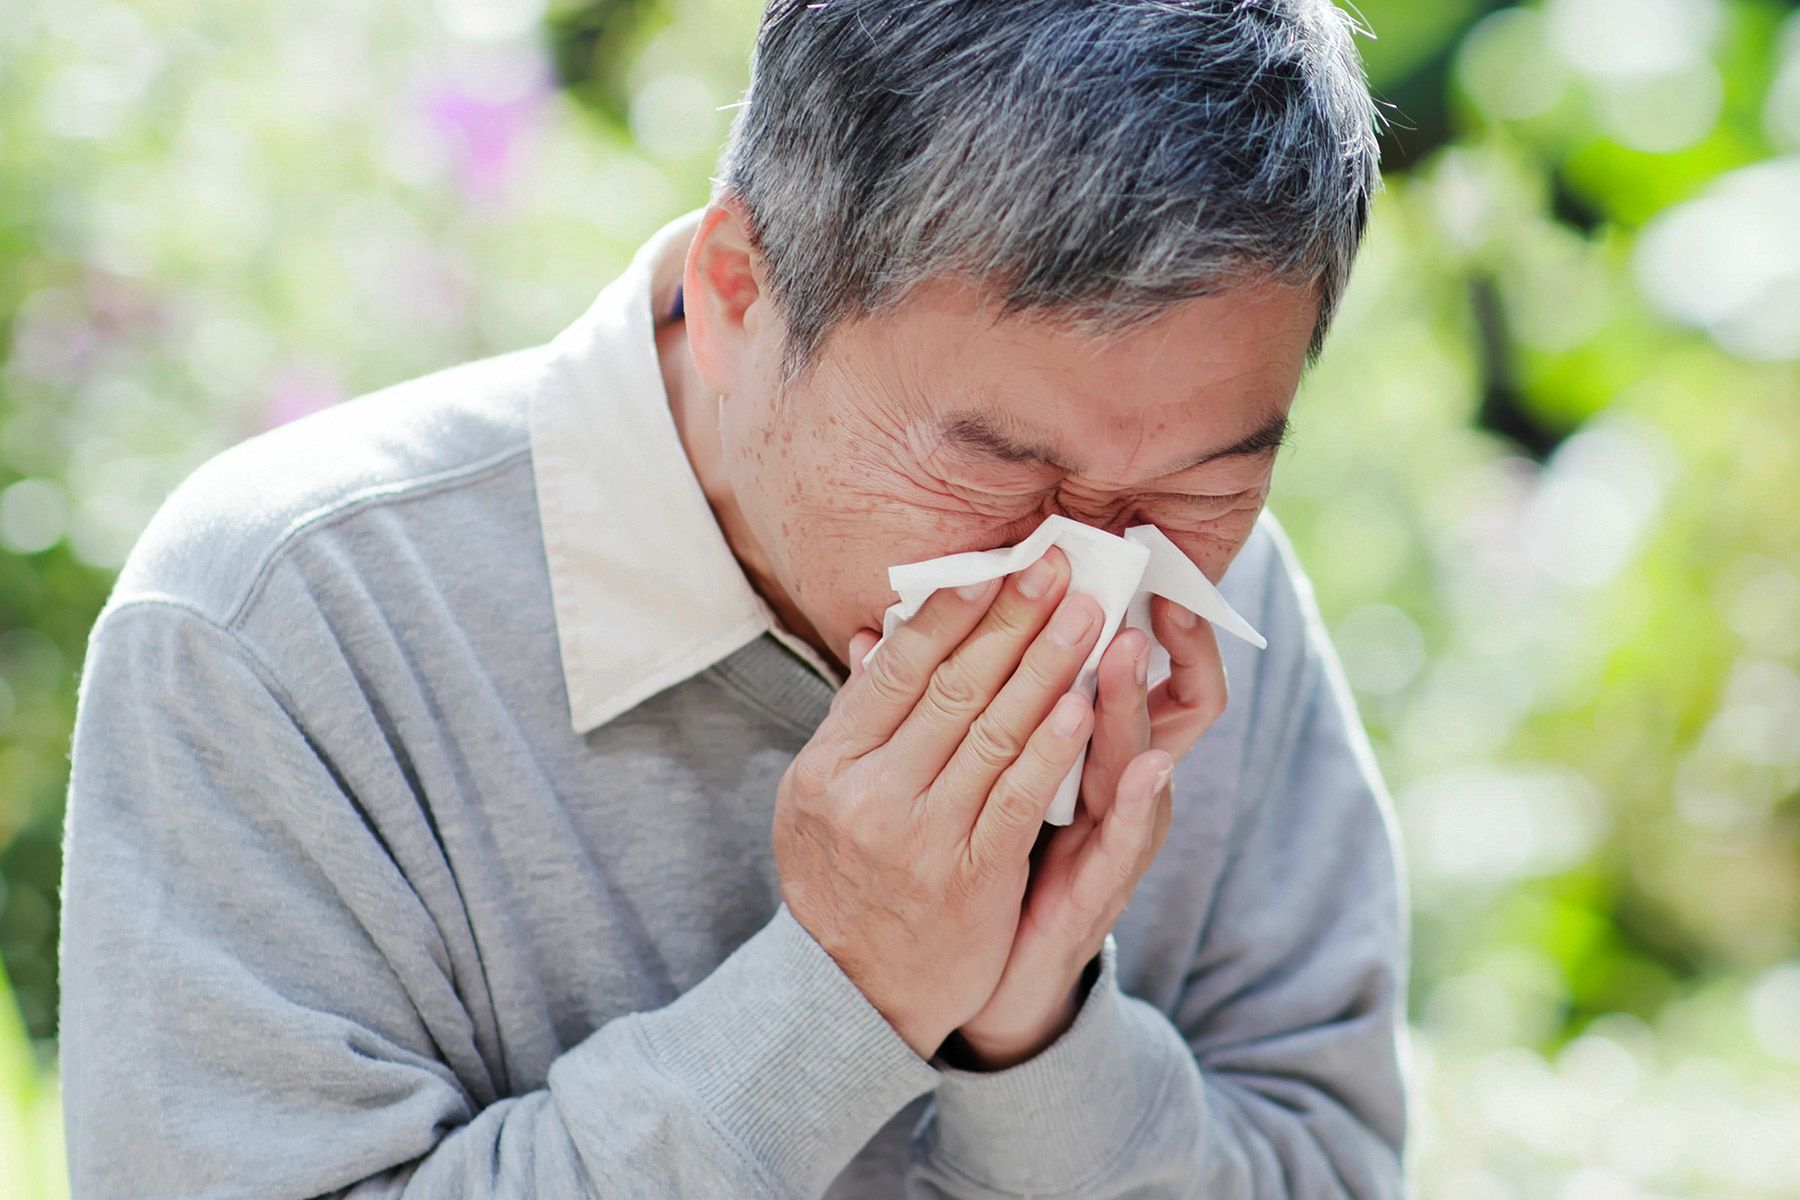 Is It Allergies or Something Else? in 2020 Cold or